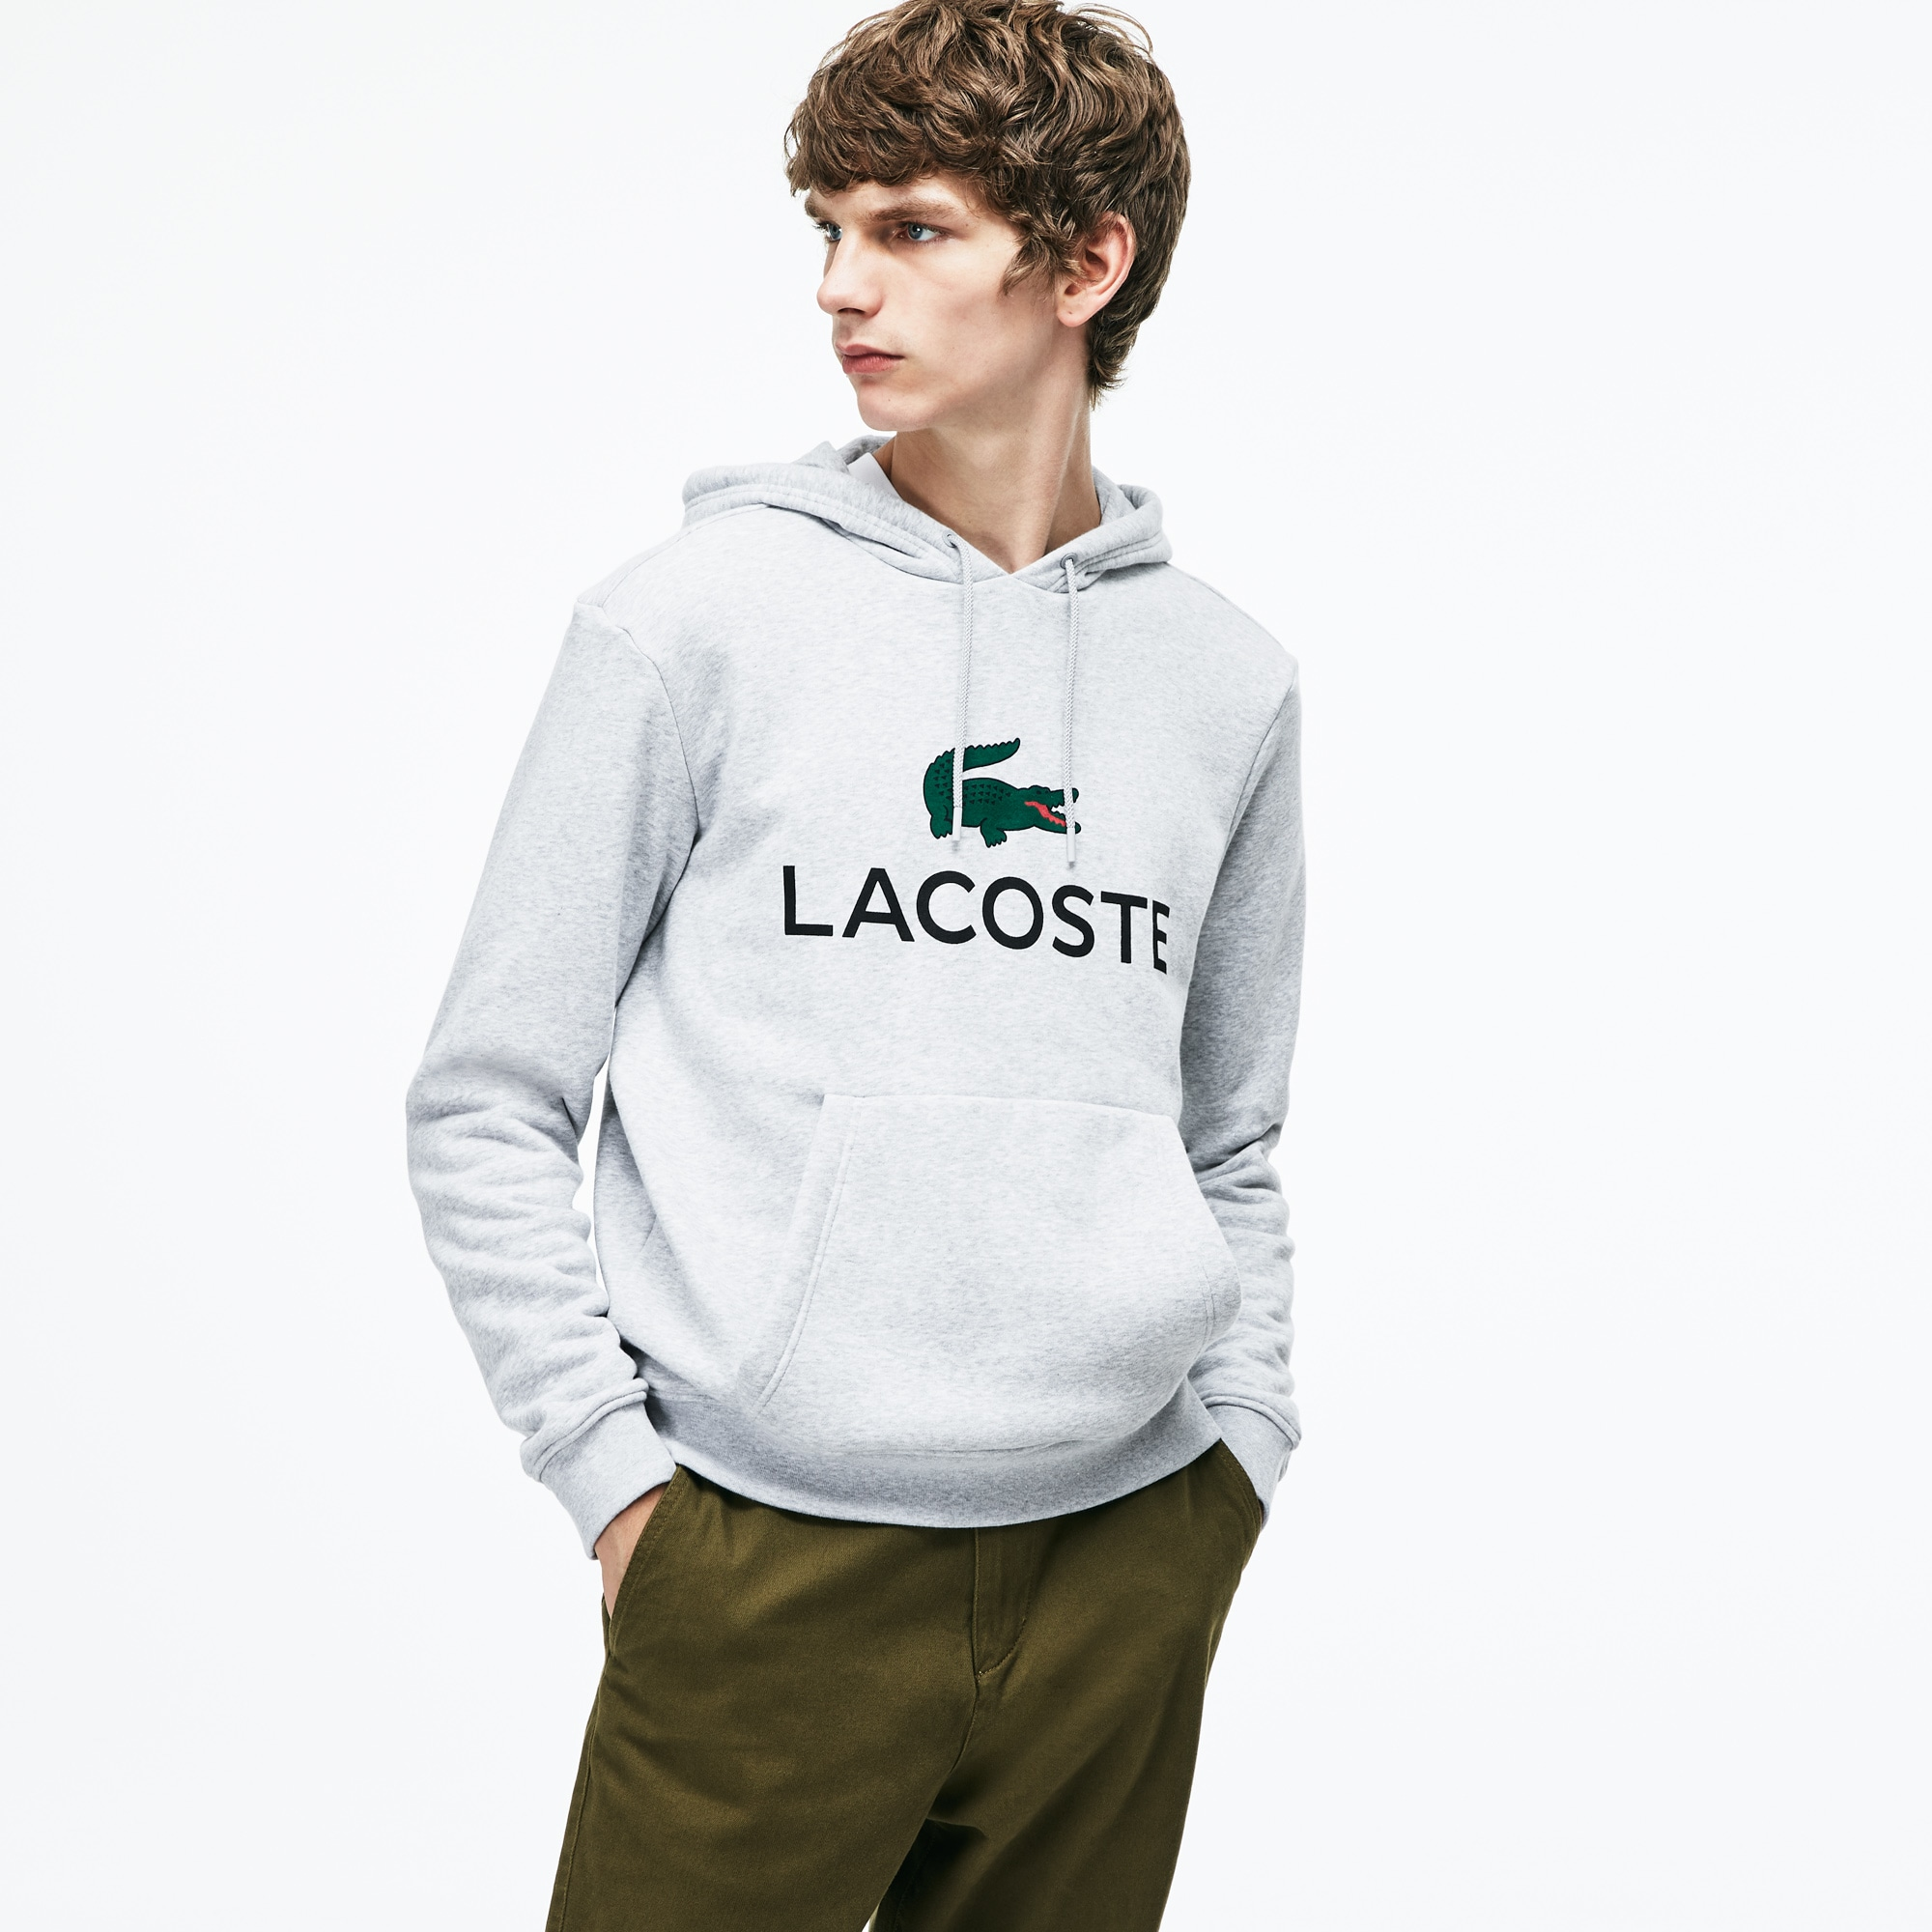 c6765217c071 Men s Hooded Lacoste Lettering Cotton Blend Fleece Sweatshirt